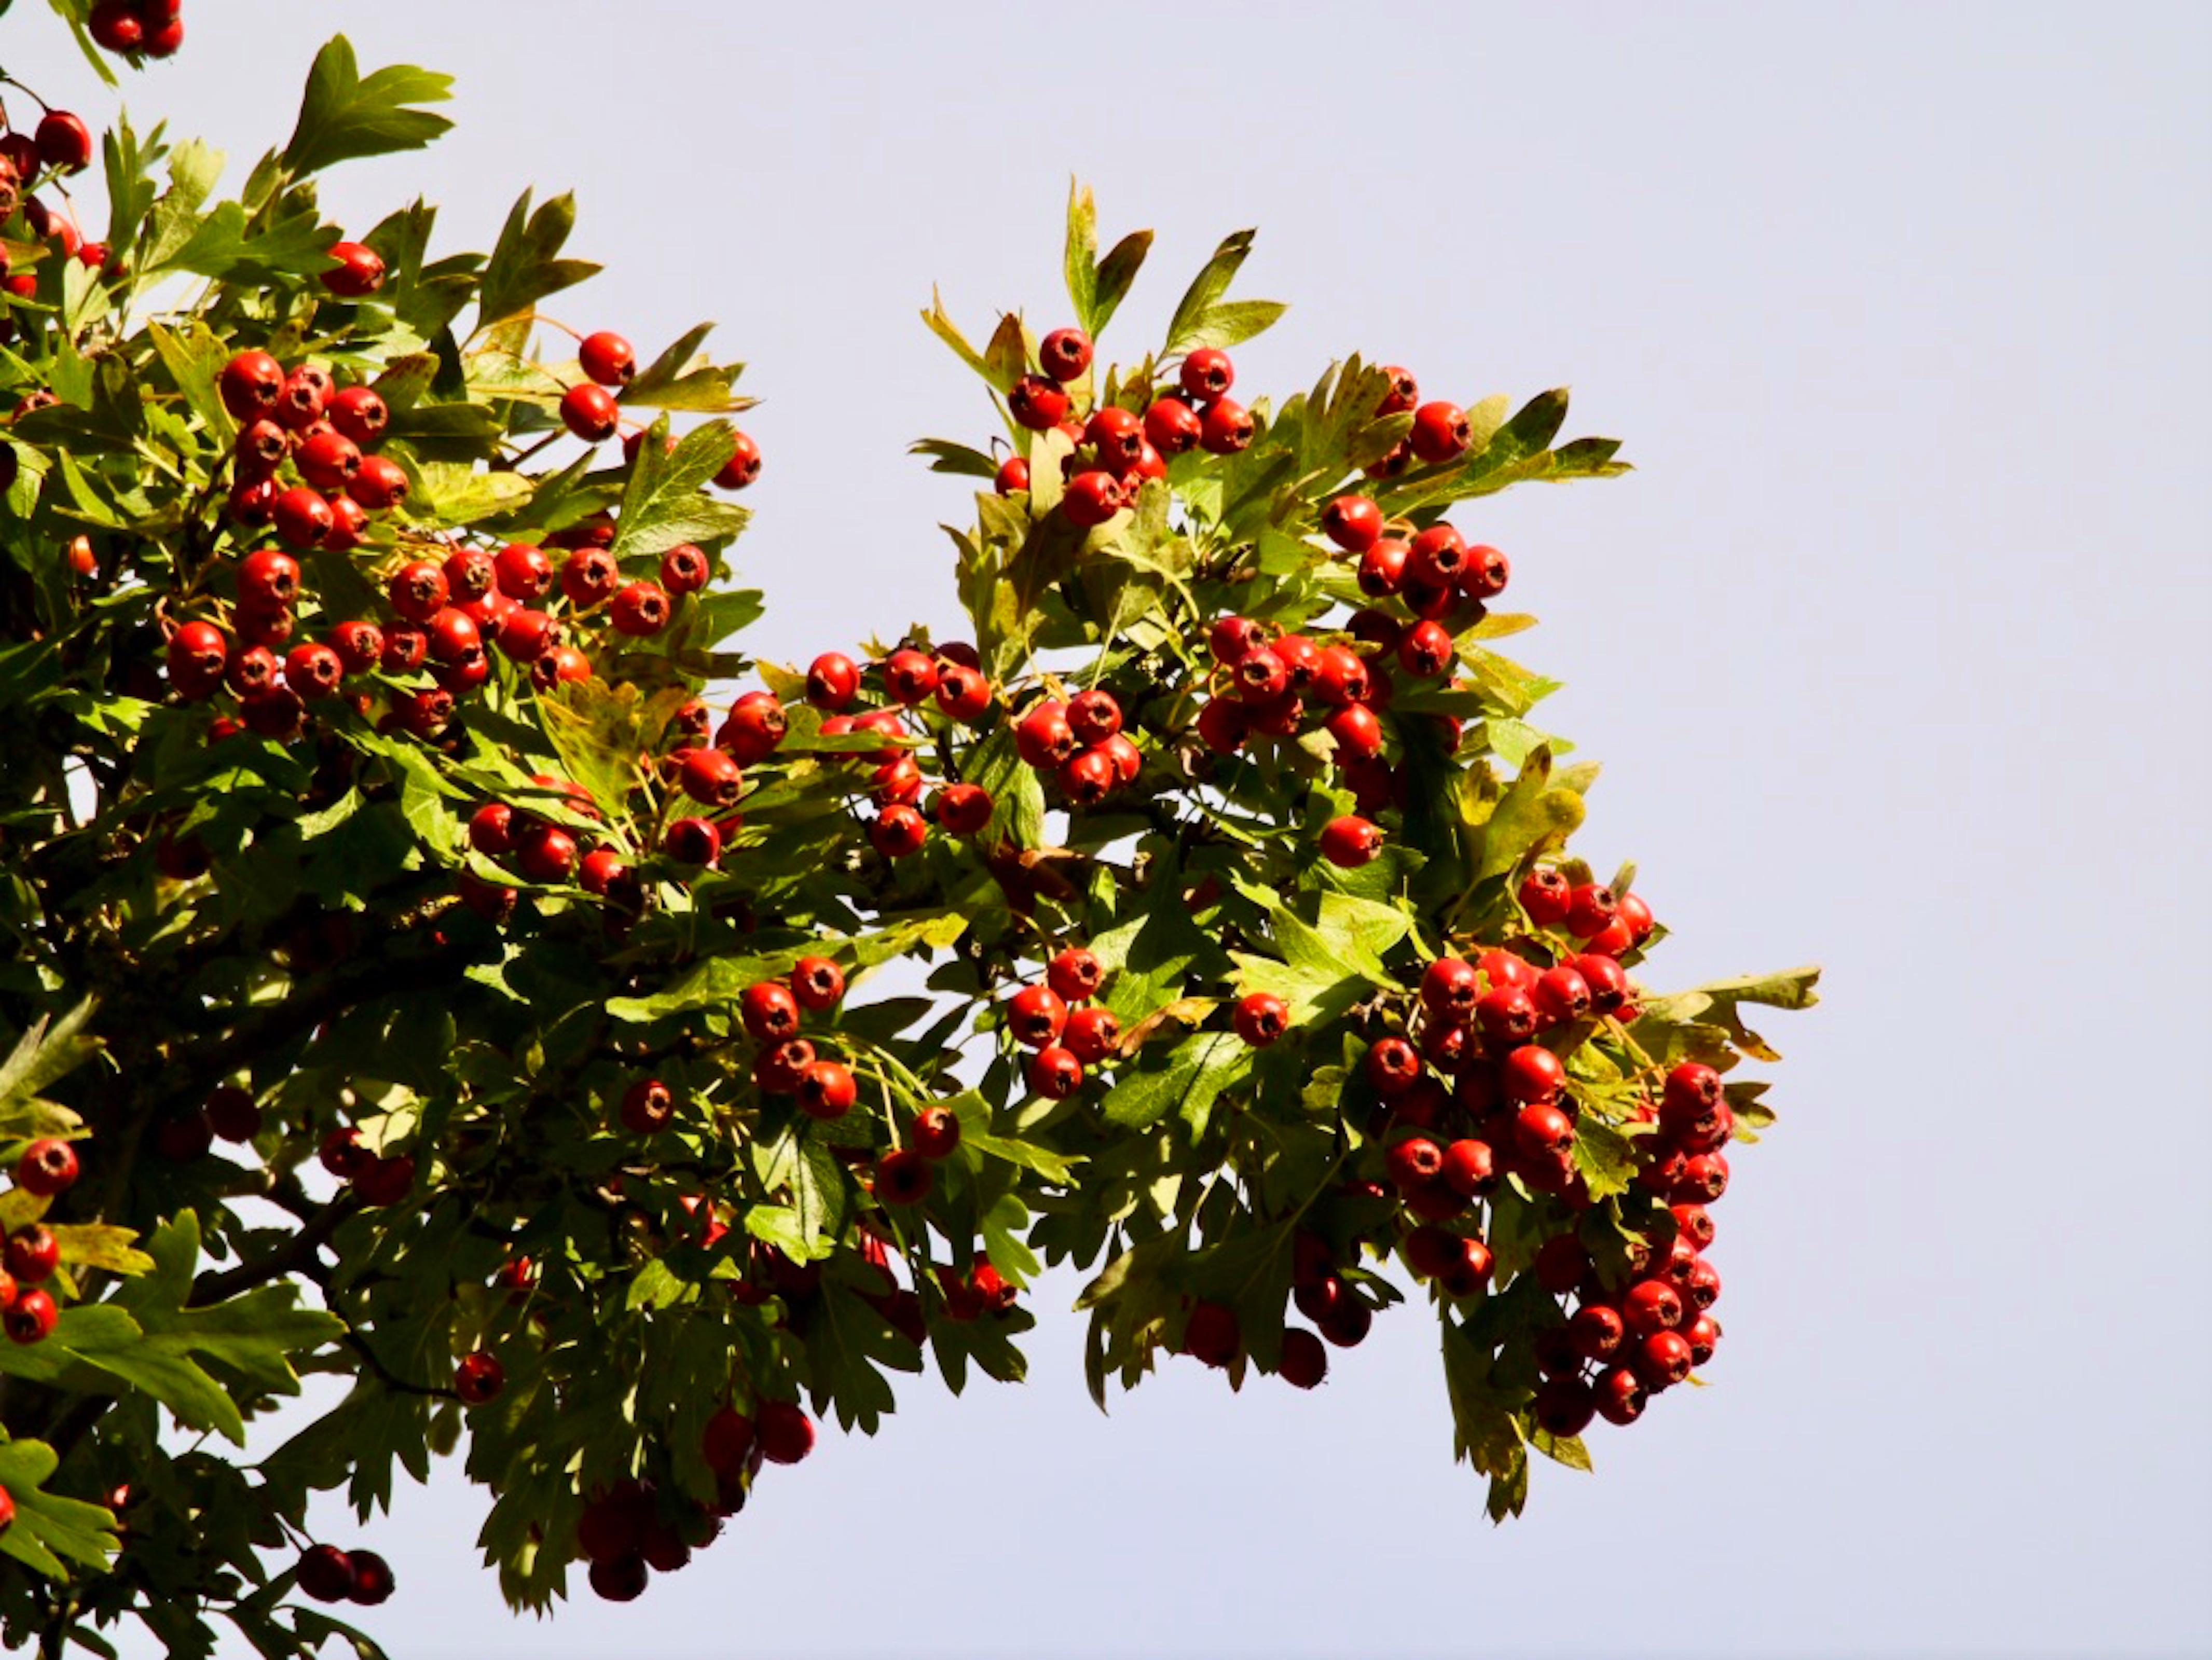 Country diary: the hedgerows are transformed, as if by magic